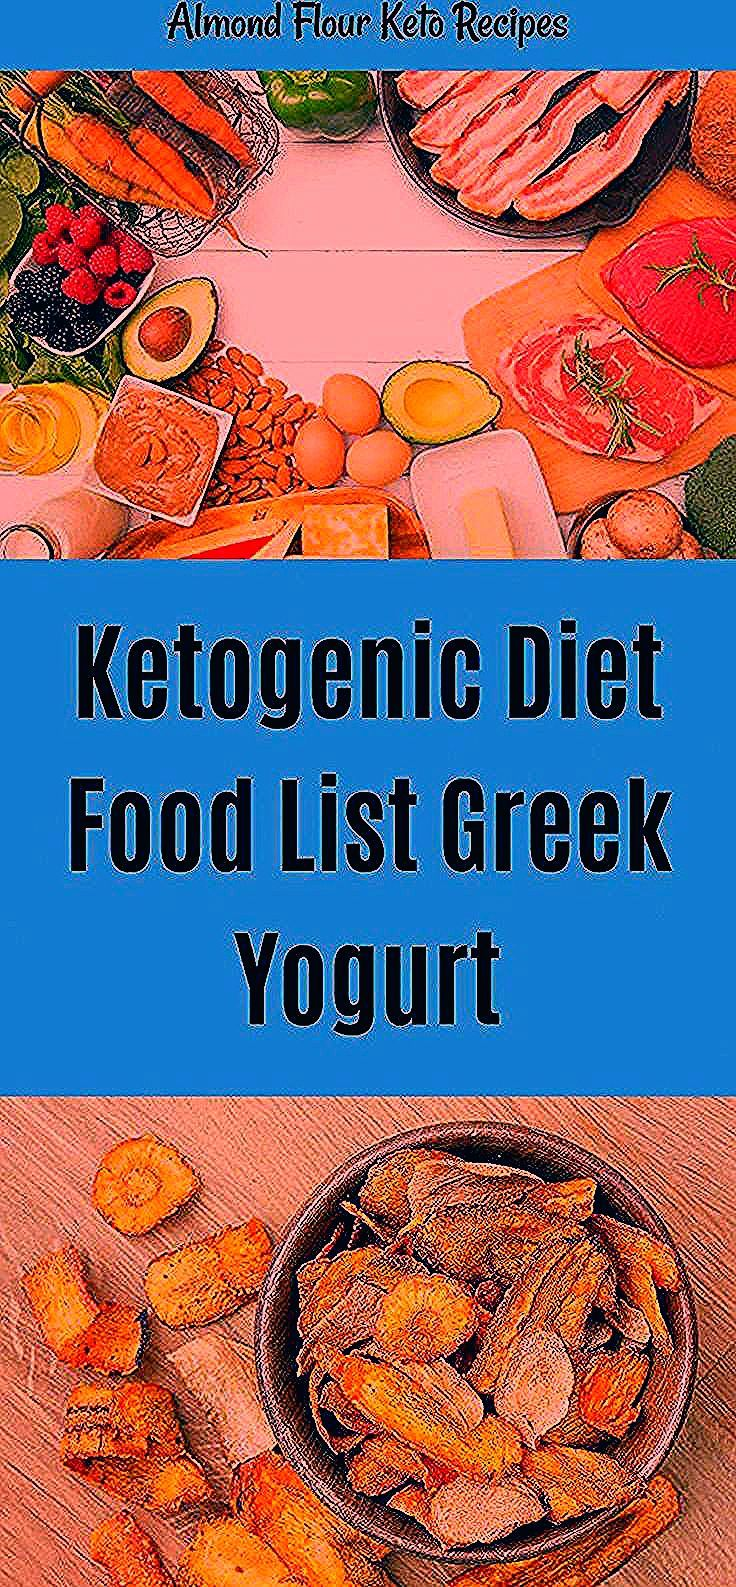 Ketogenic Diet Food List Greek Yogurt. Ways To Go By For Daily Eating Routine An... #daily #diet #eating #Food #Greek #ketogenic #List #KetogenicDietAndExercise